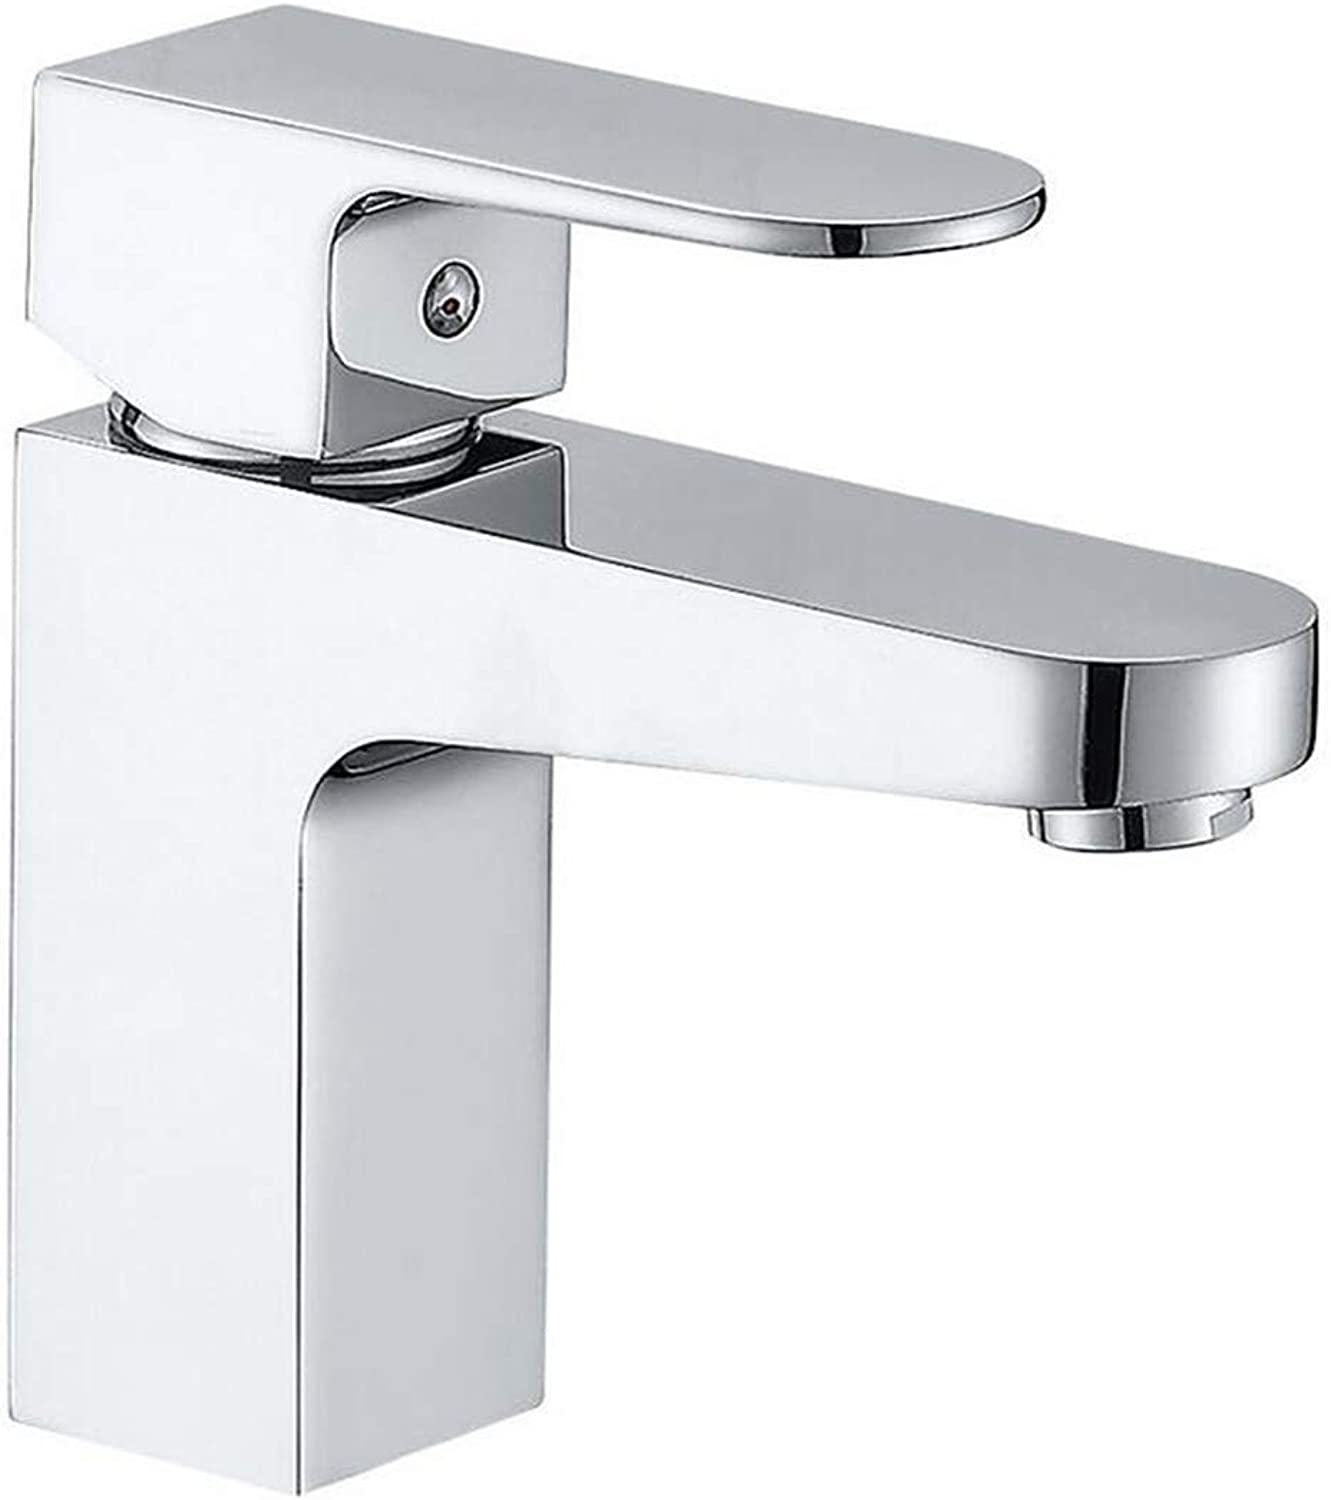 Basin Sink Mixer Faucetbathroom Basin Hot and Cold Water Mixer Faucet Single Hole Faucet Copper Material Faucet